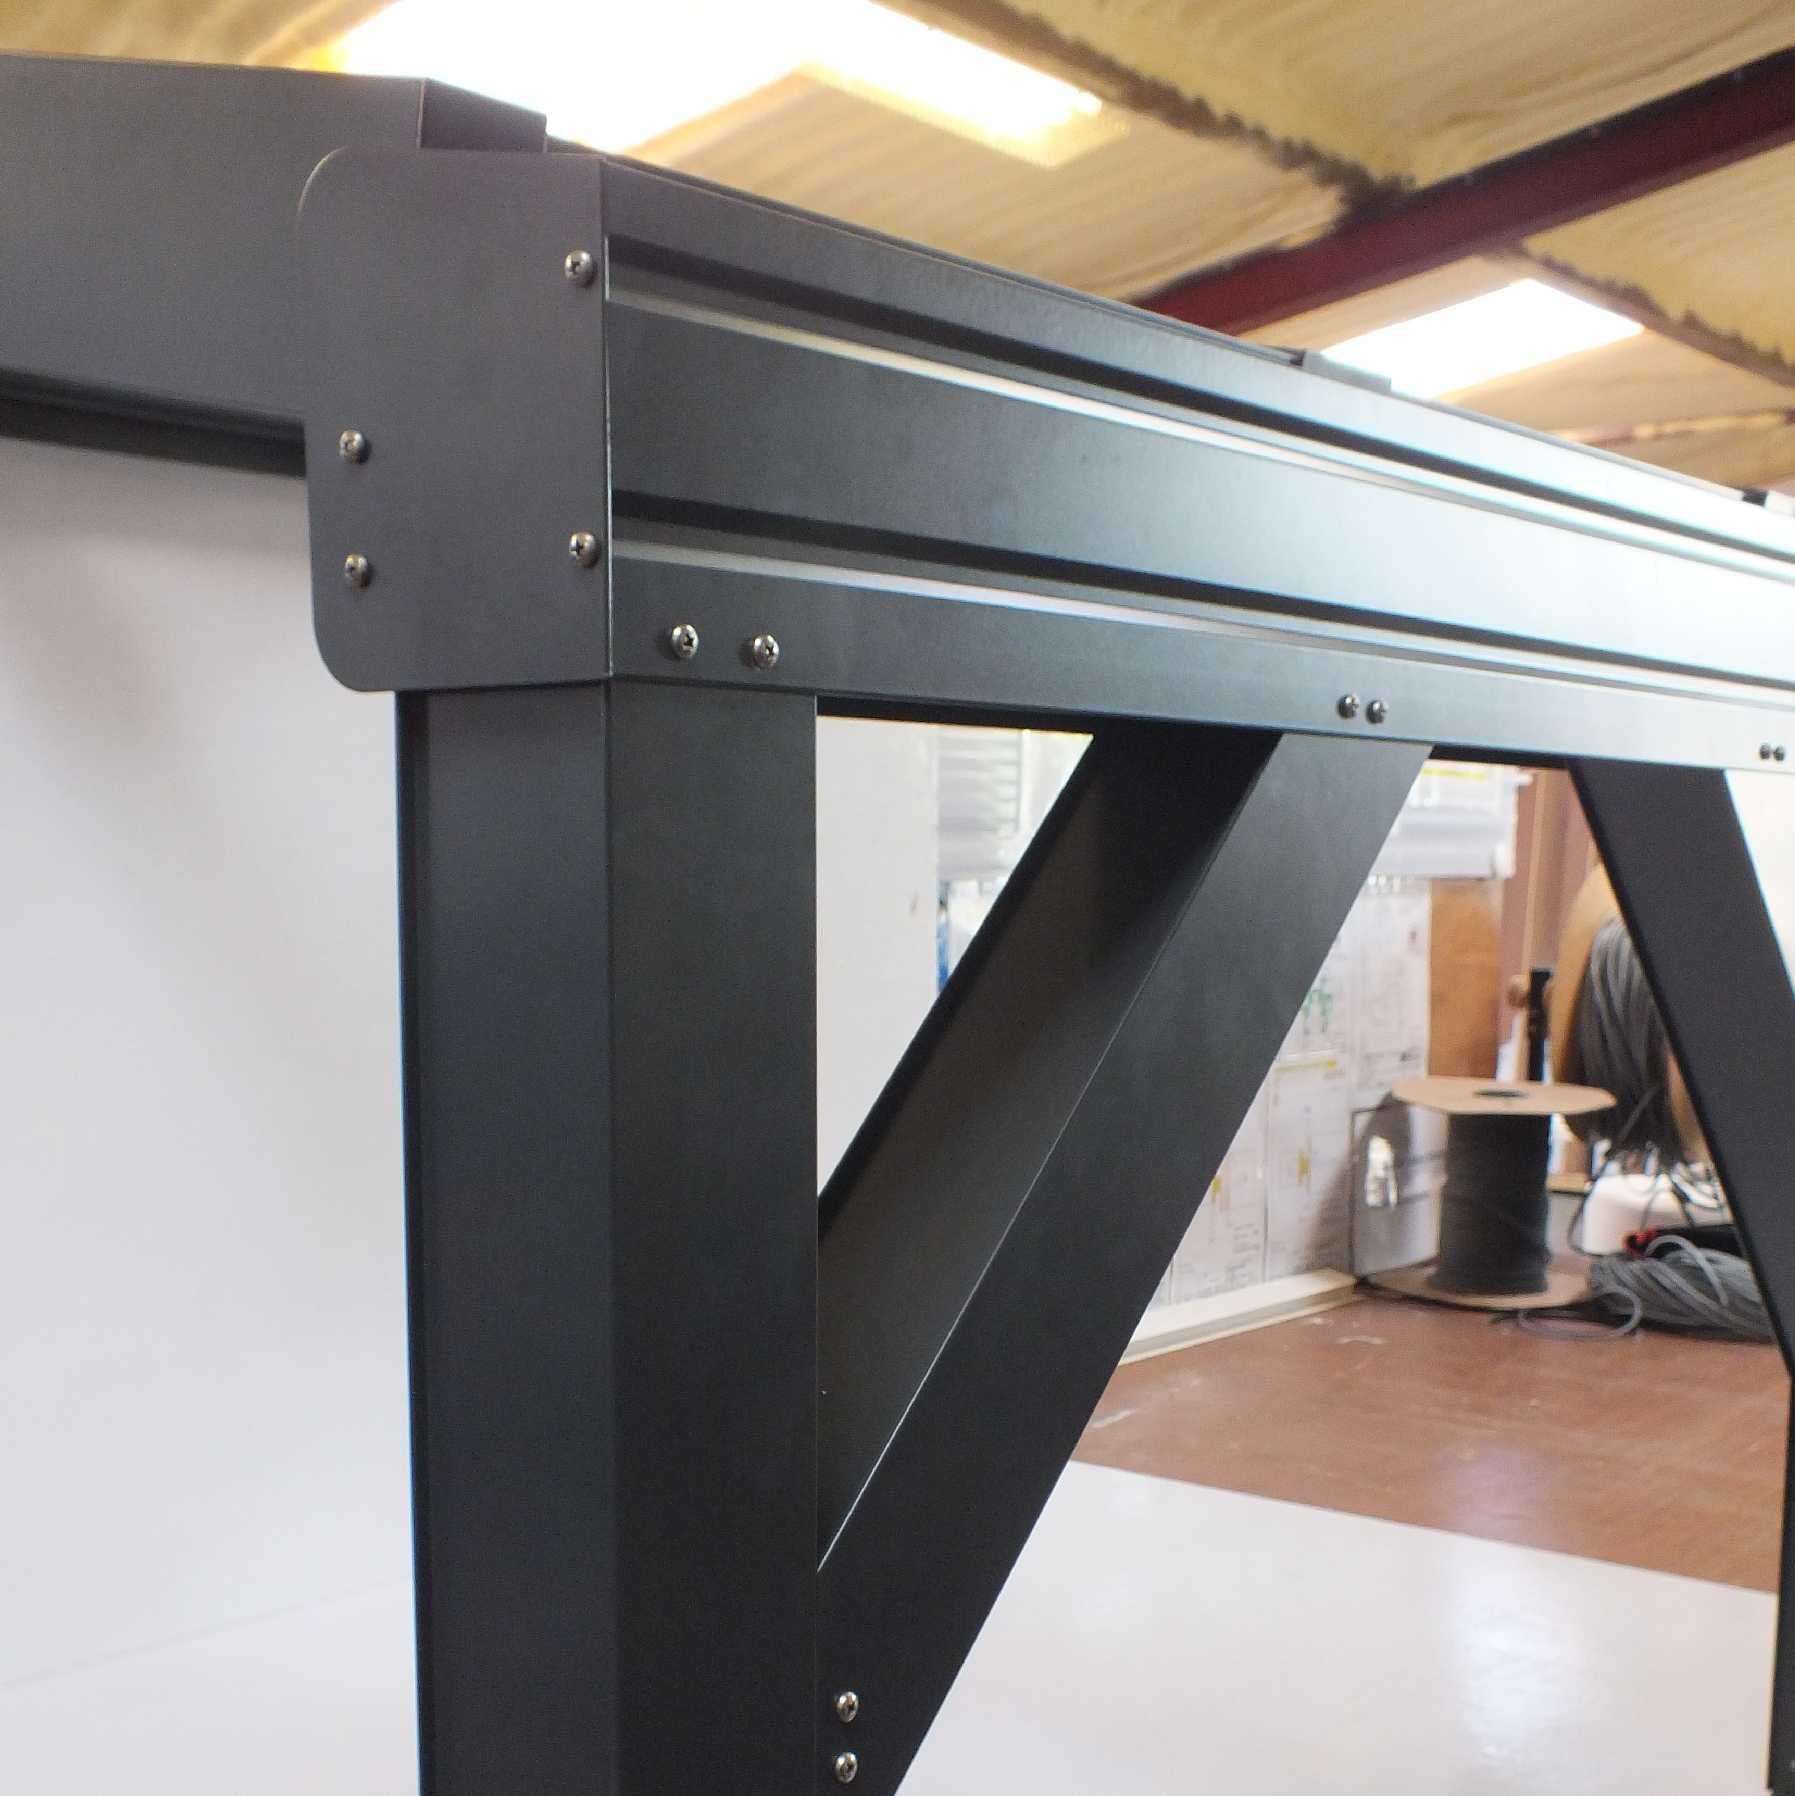 Omega Smart Lean-To Canopy, Anthracite Grey, UNGLAZED for 6mm Glazing - 10.5m (W) x 3.5m (P), (5) Supporting Posts from Omega Build